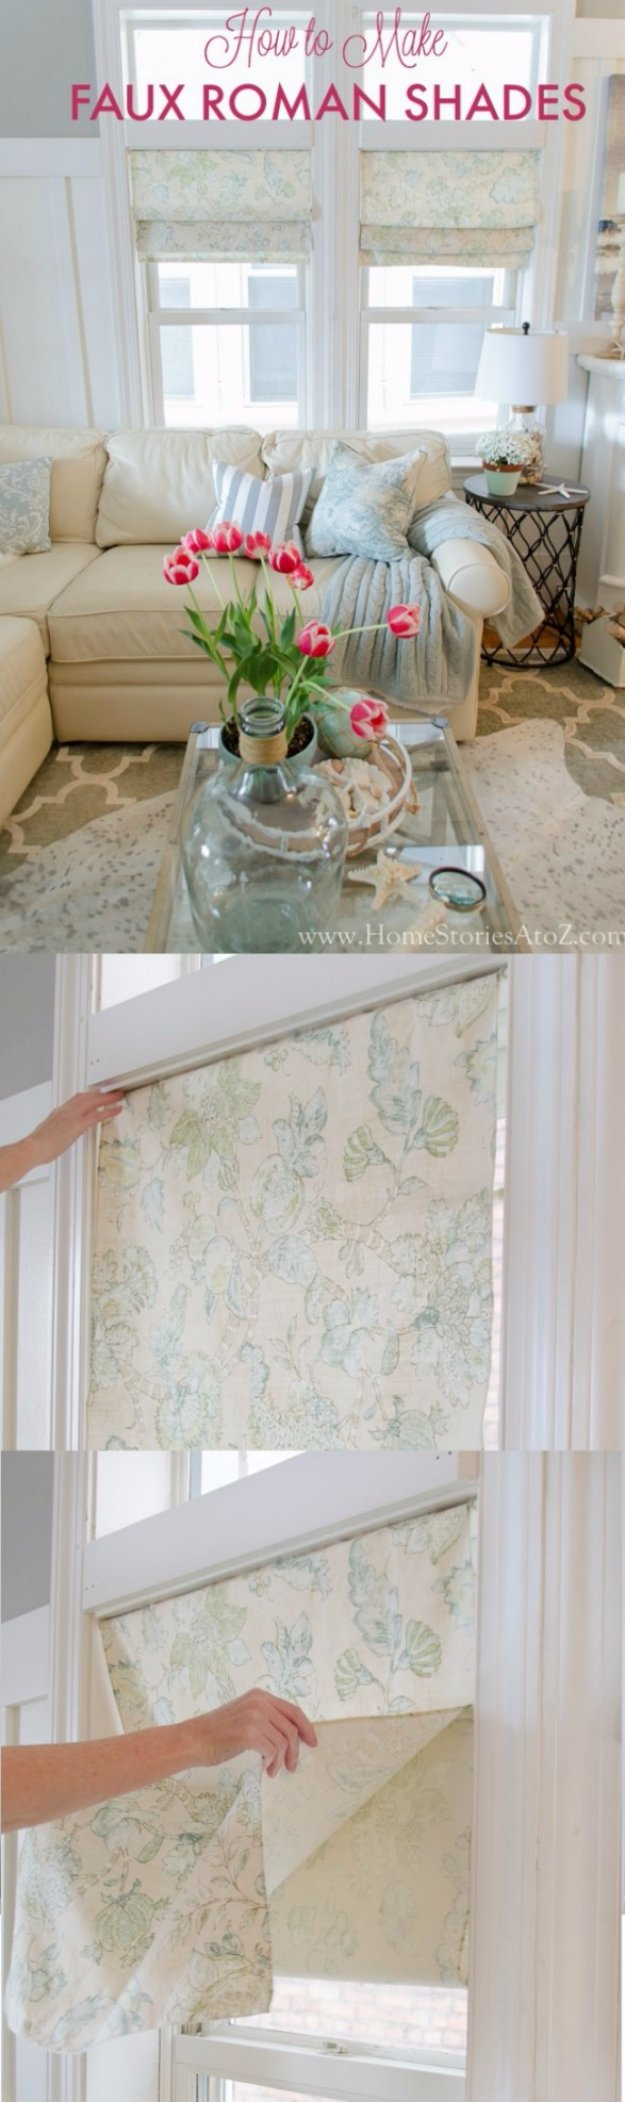 DIY Renters Decor Ideas - Faux Roman Shade Tutorial - Cool DIY Projects for Those Renting Aparments, Condos or Dorm Rooms - Easy Temporary Wall Art, Contact Paper, Washi Tape and Shelves to Make at Home http://diyjoy.com/diy-decor-ideas-for-renters